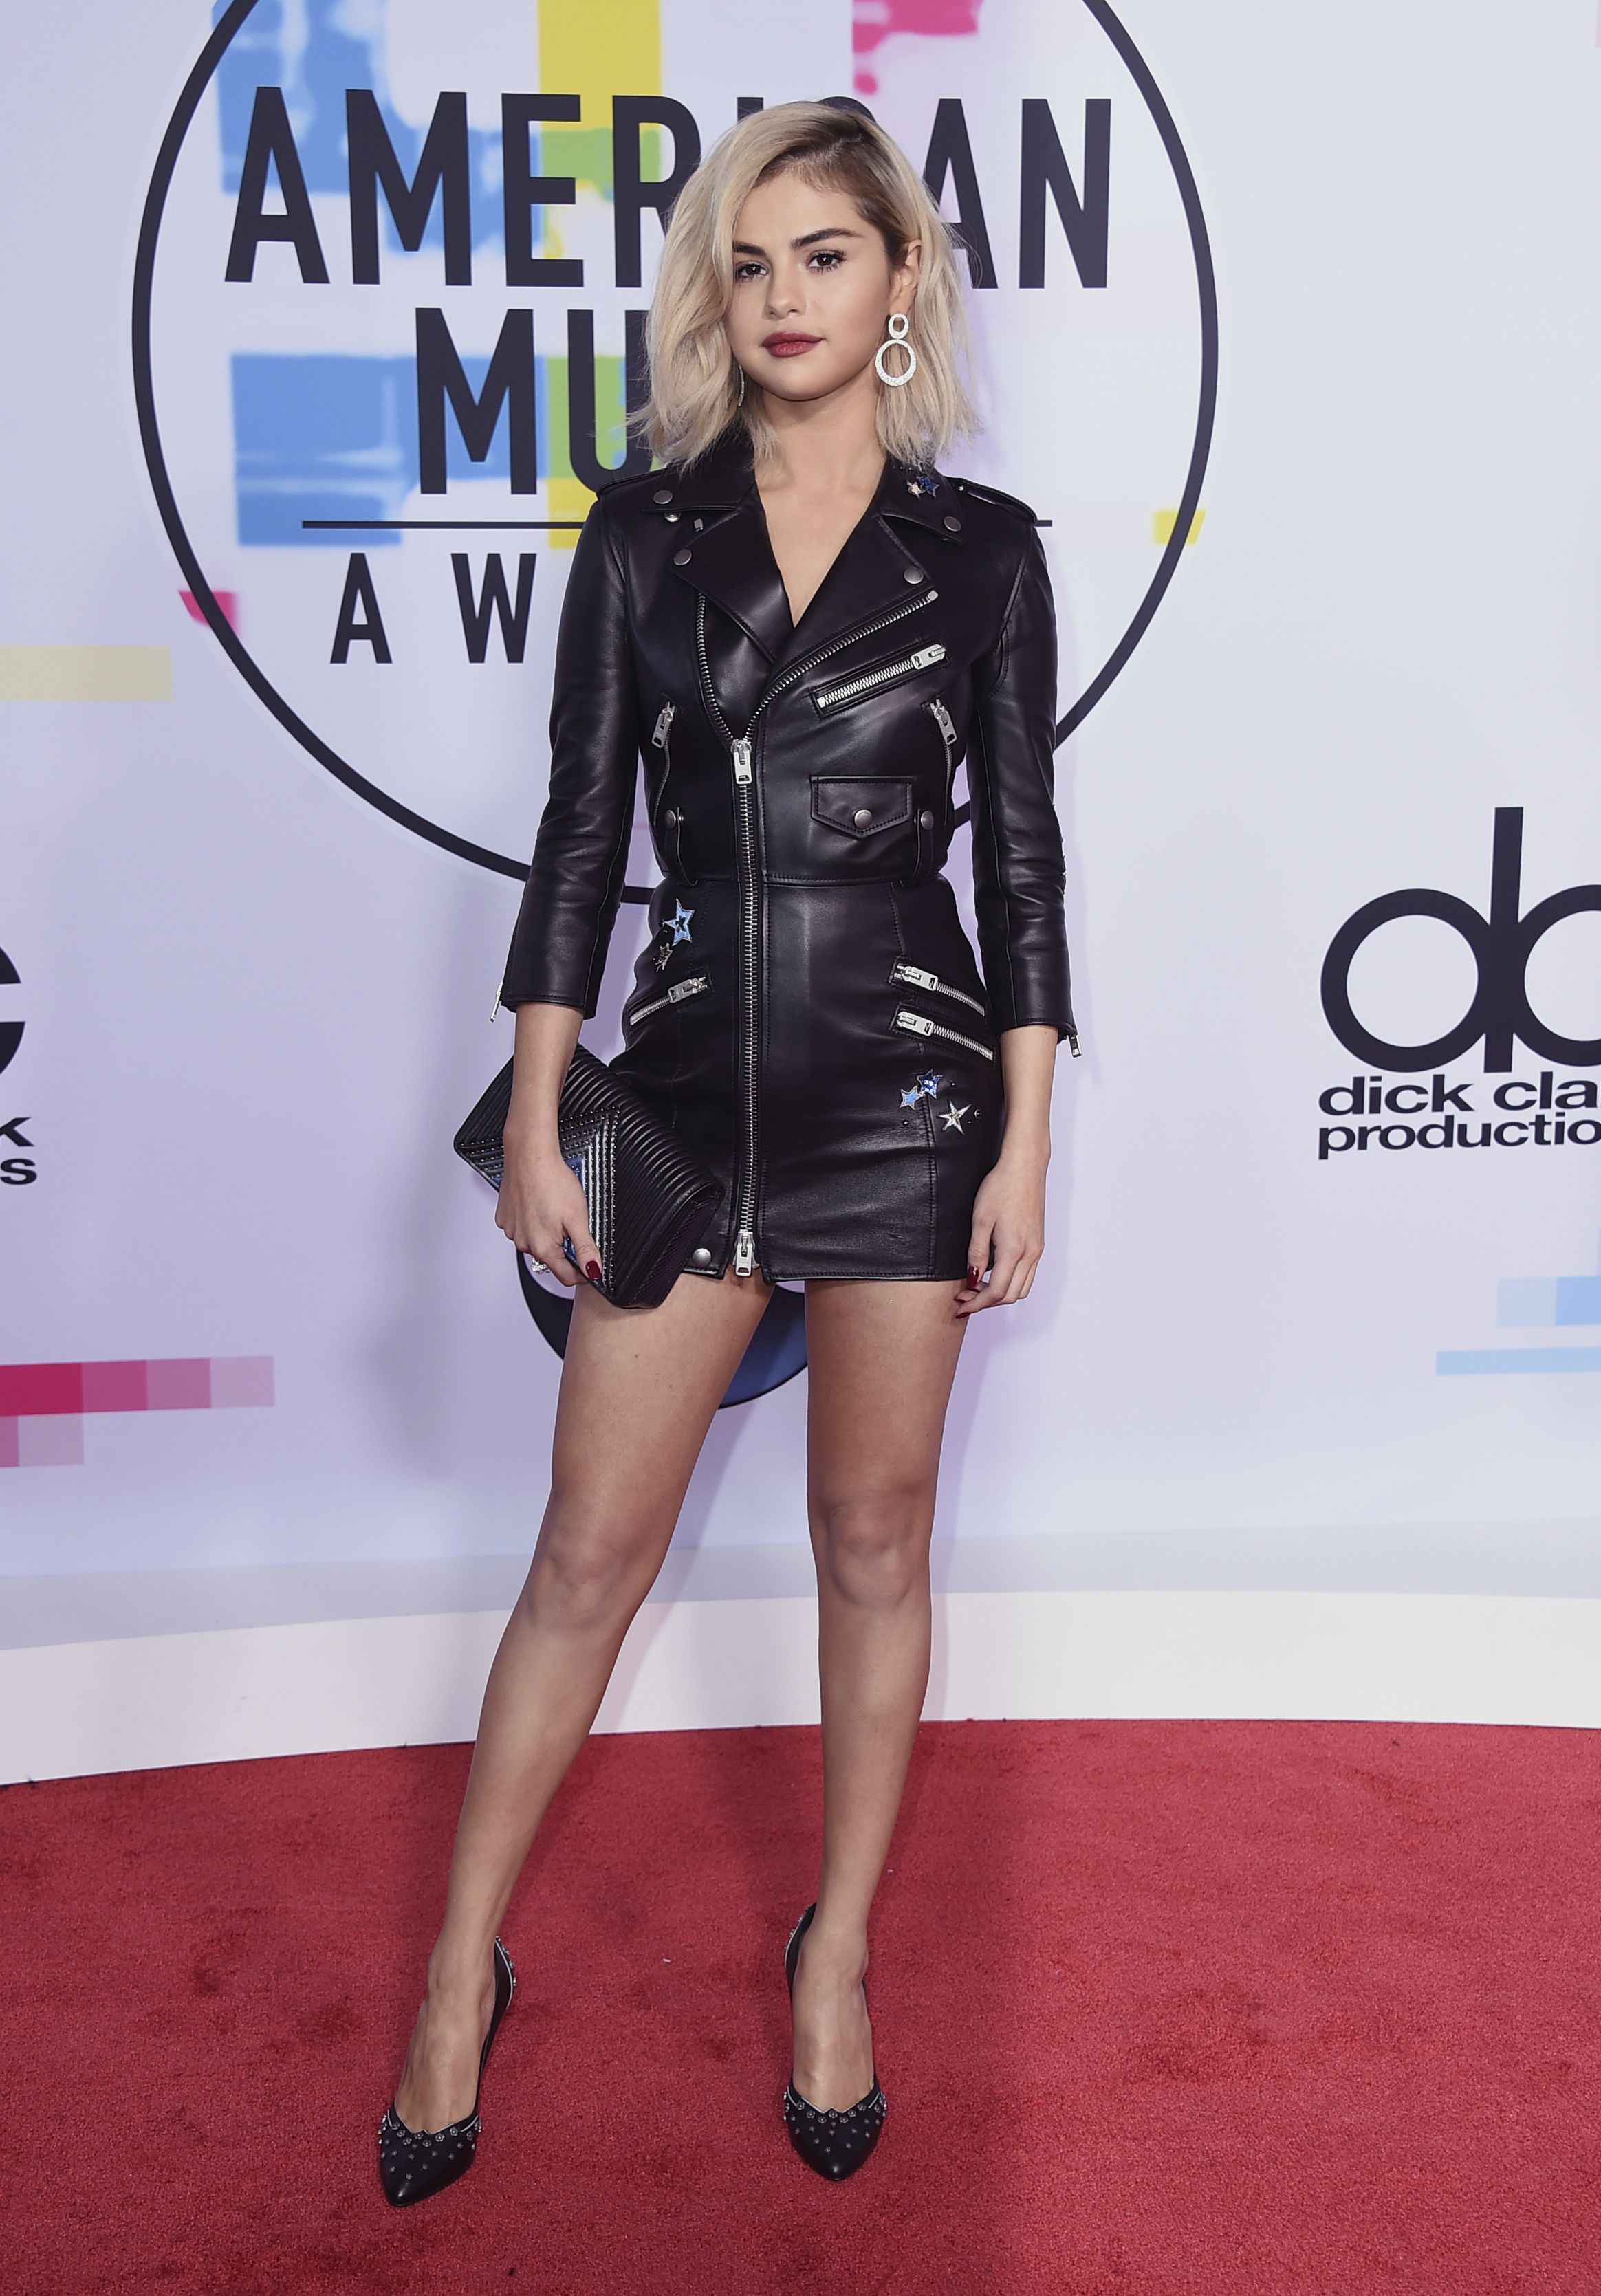 <div class='meta'><div class='origin-logo' data-origin='none'></div><span class='caption-text' data-credit='Jordan Strauss/Invision/AP'>Selena Gomez arrives at the American Music Awards at the Microsoft Theater on Sunday, Nov. 19, 2017, in Los Angeles.</span></div>